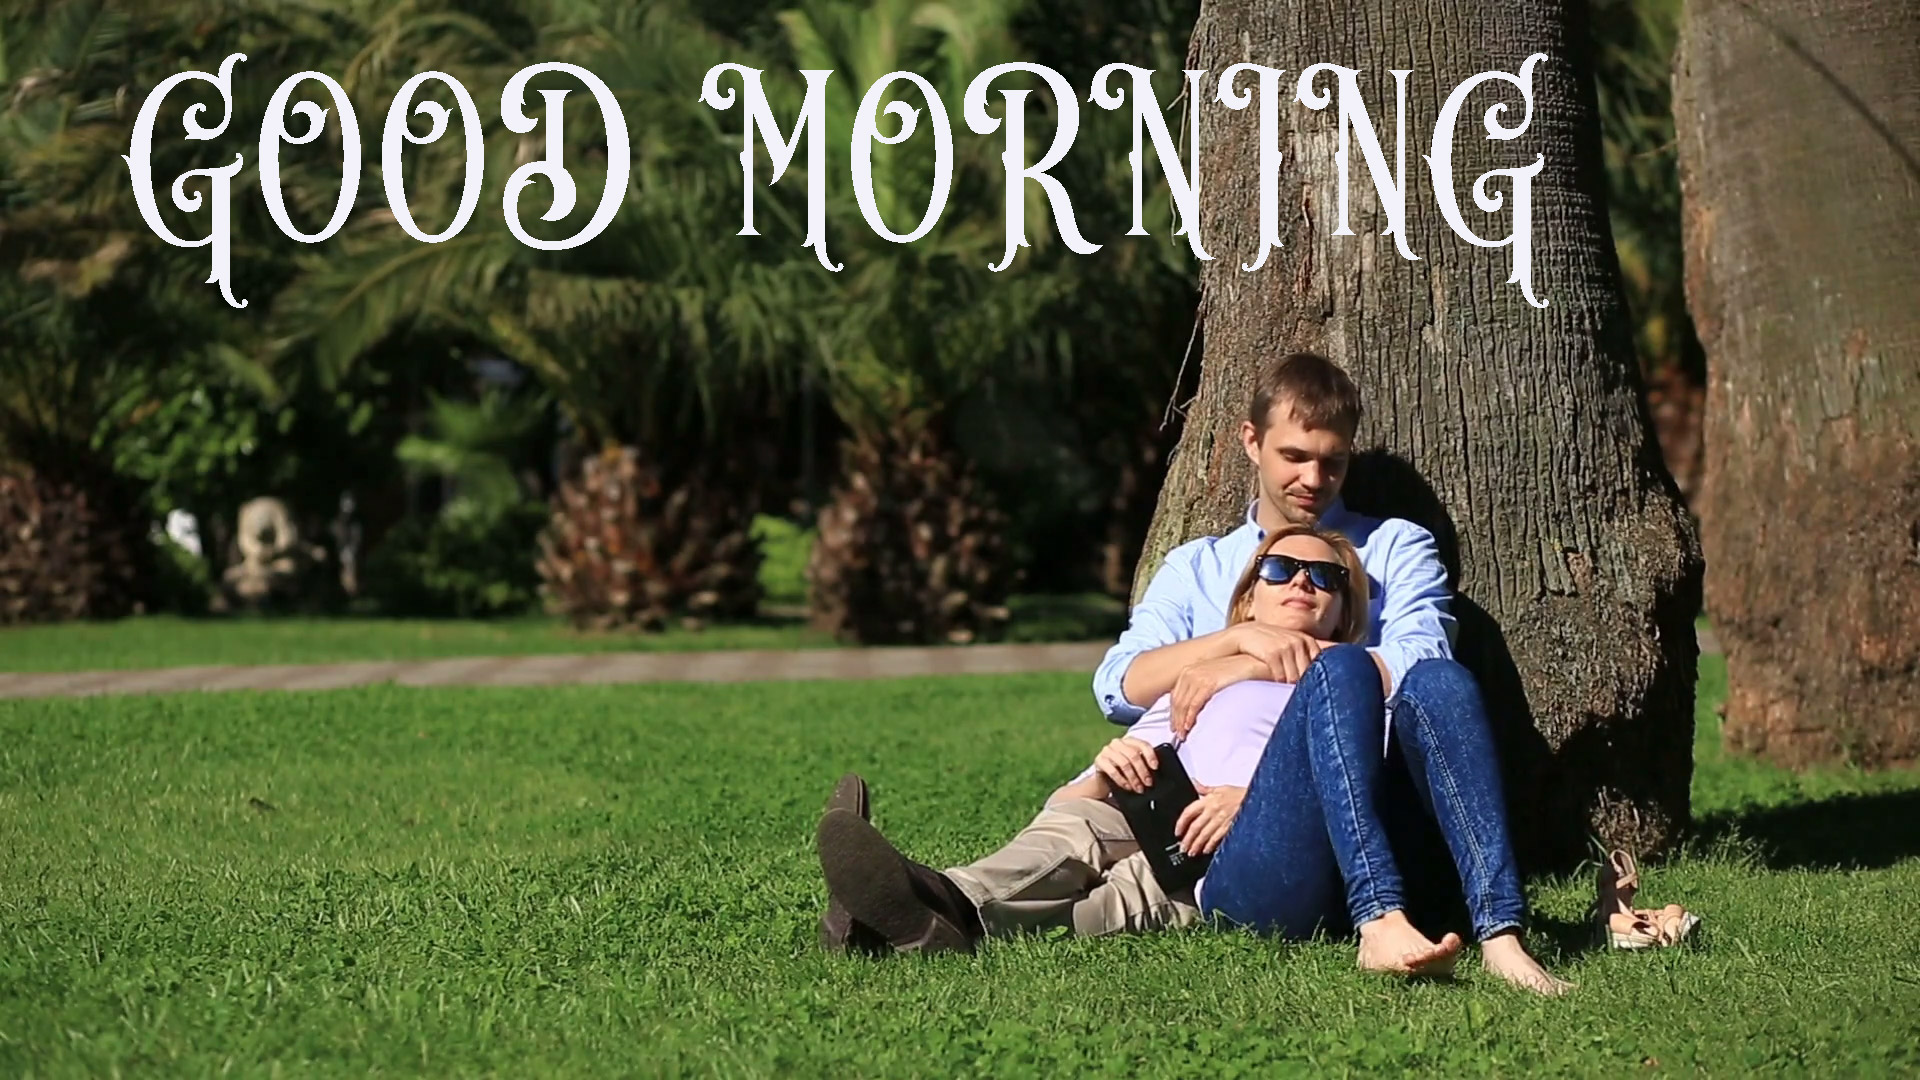 New Lover Good Morning Images Photo Wallpaper Pics Free HD